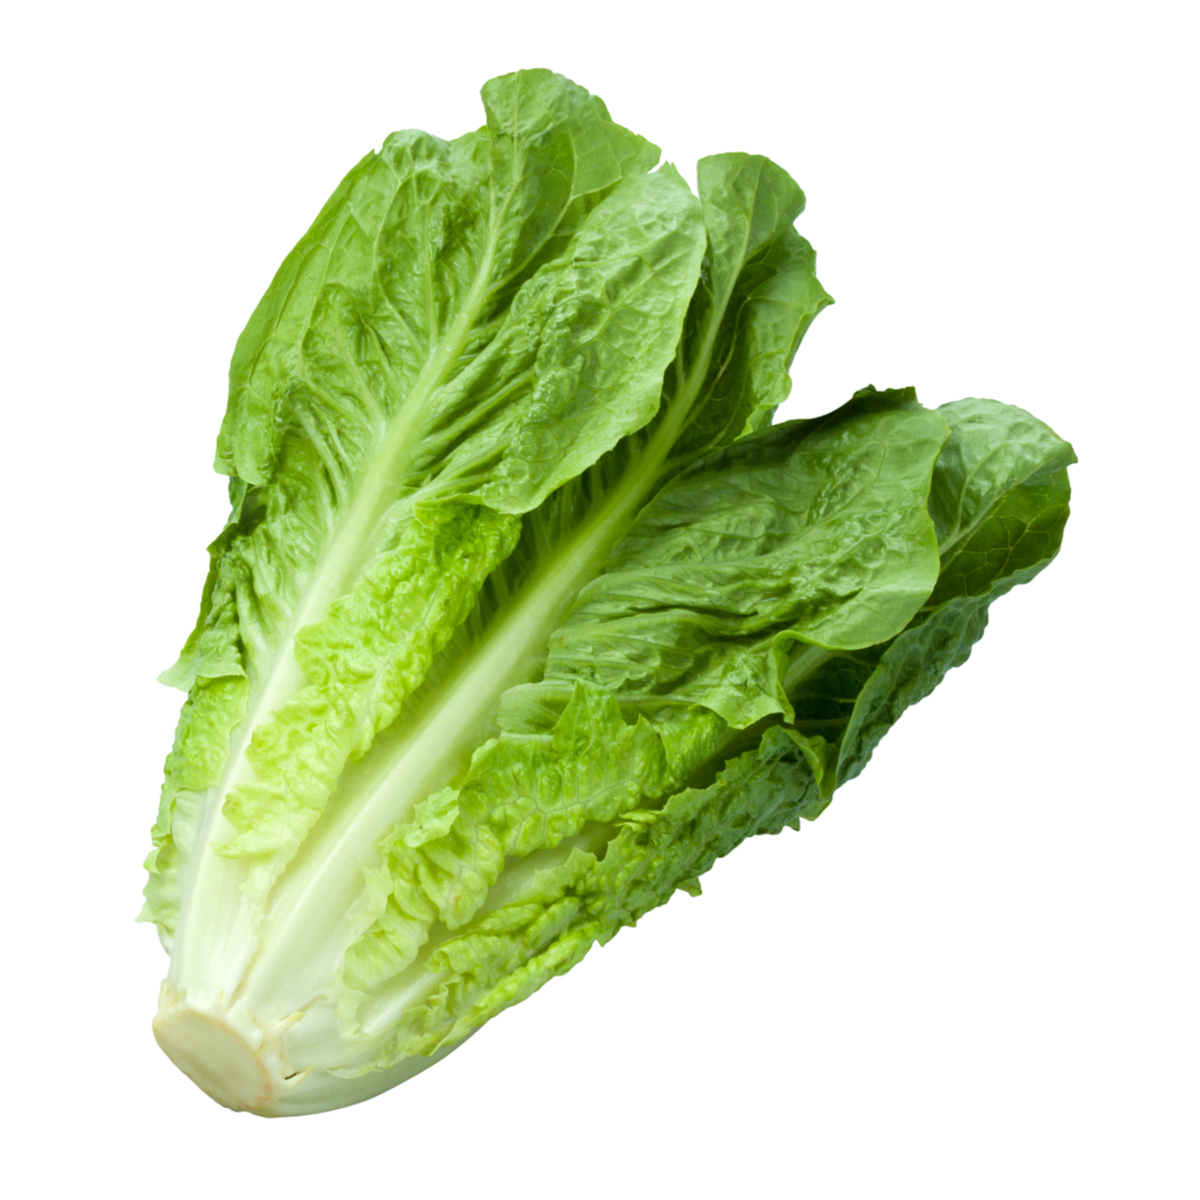 Image of Large Cos Lettuce